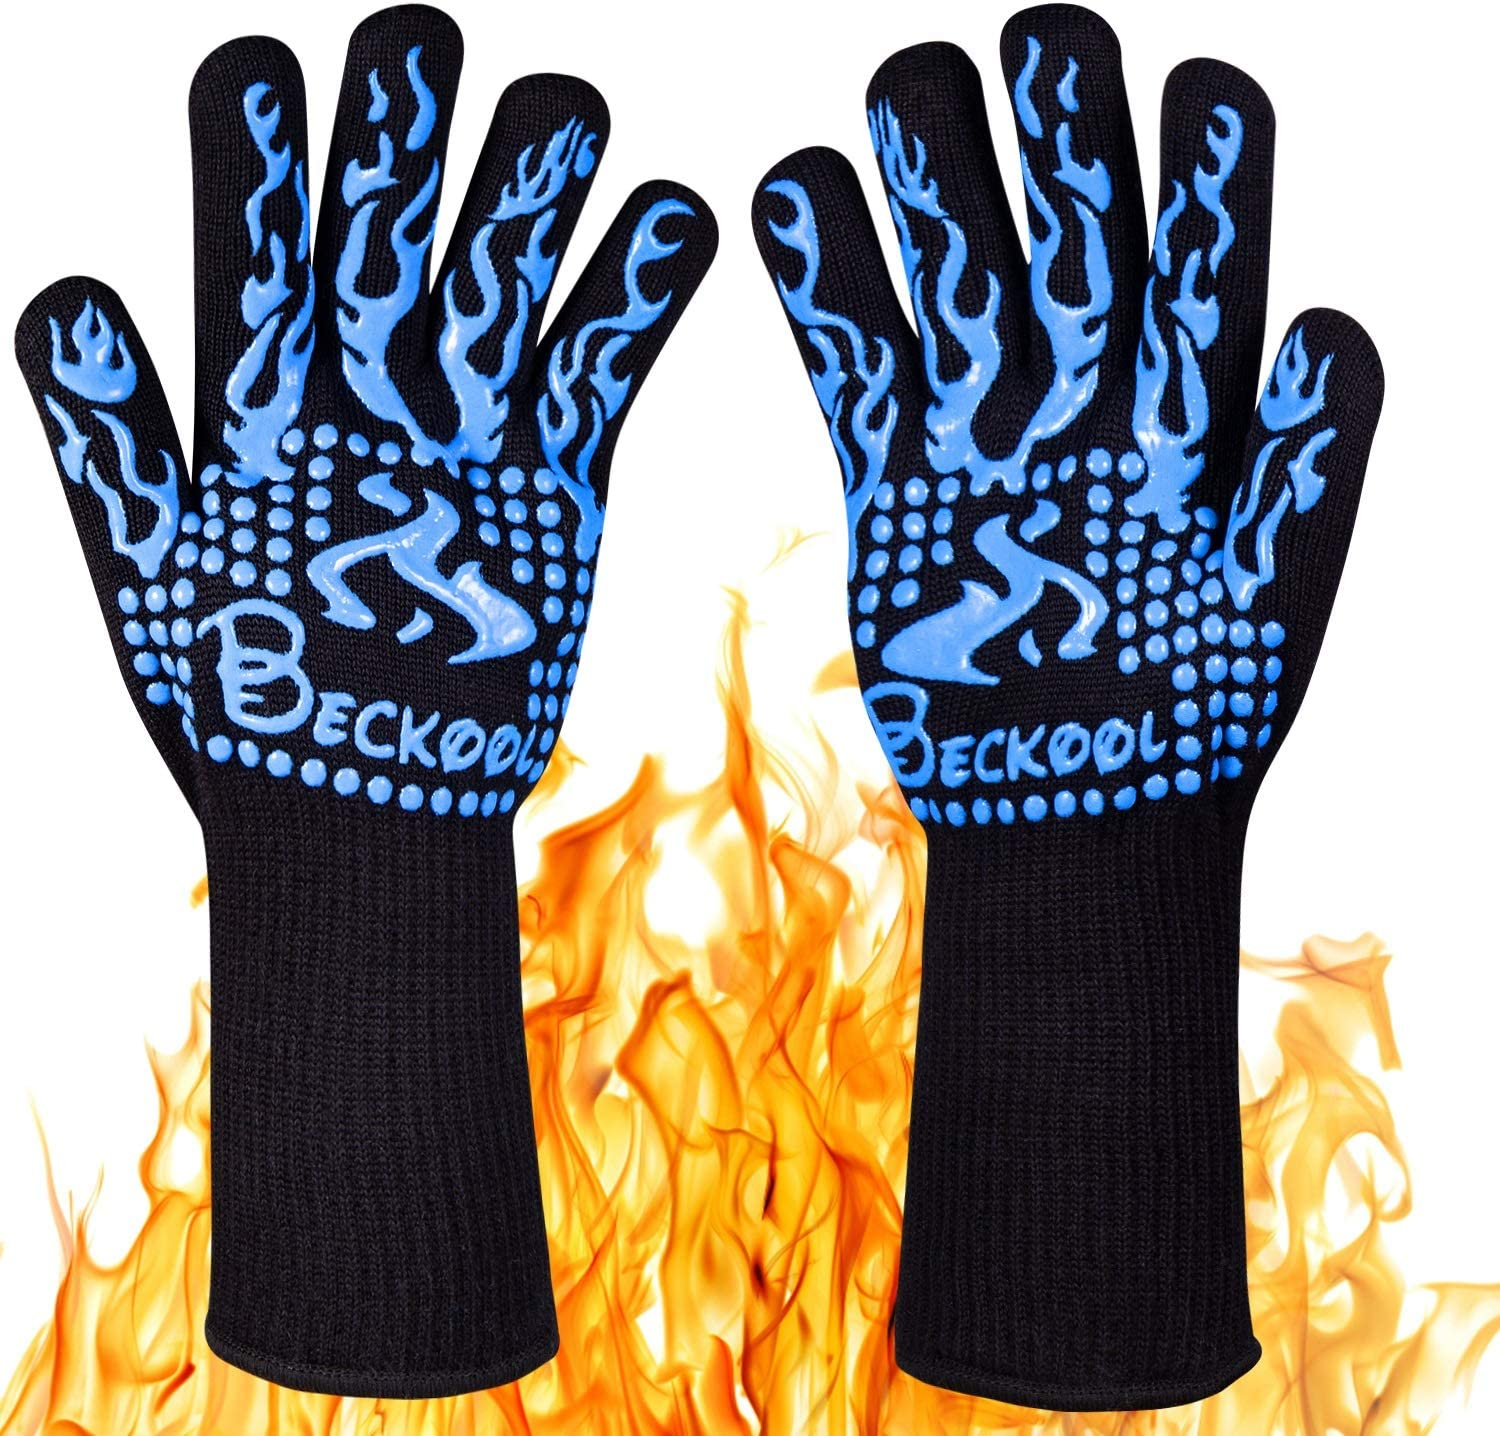 Beckool Heat Resistant BBQ Gloves, Barbecue Accessories Oven Mitts 932℉ for Kitchen, Cooking, Grilling, Baking